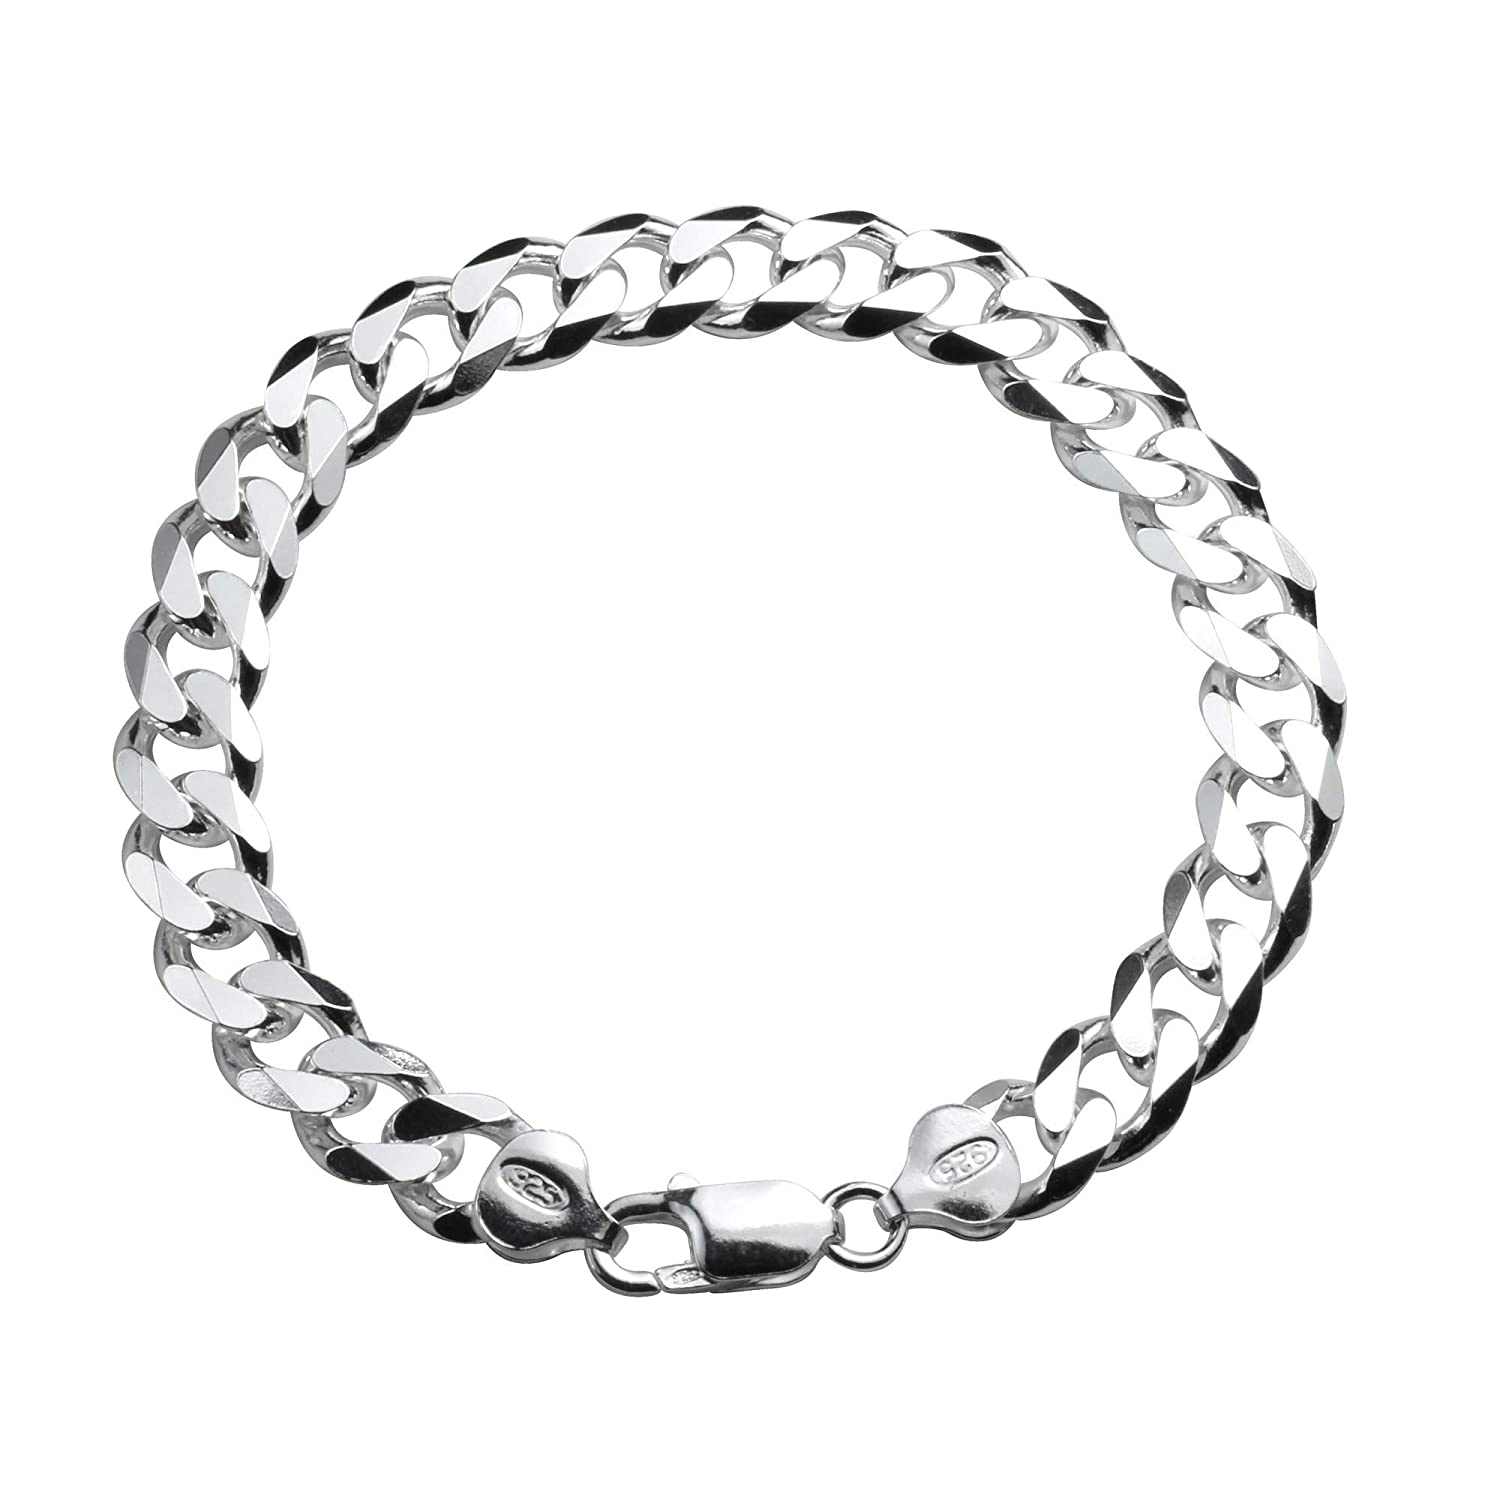 861f54e3bc443 Designer Inspired 8mm Thick Silver Curb Chain Bracelet Sterling 925 Stamped  8inch 20cm